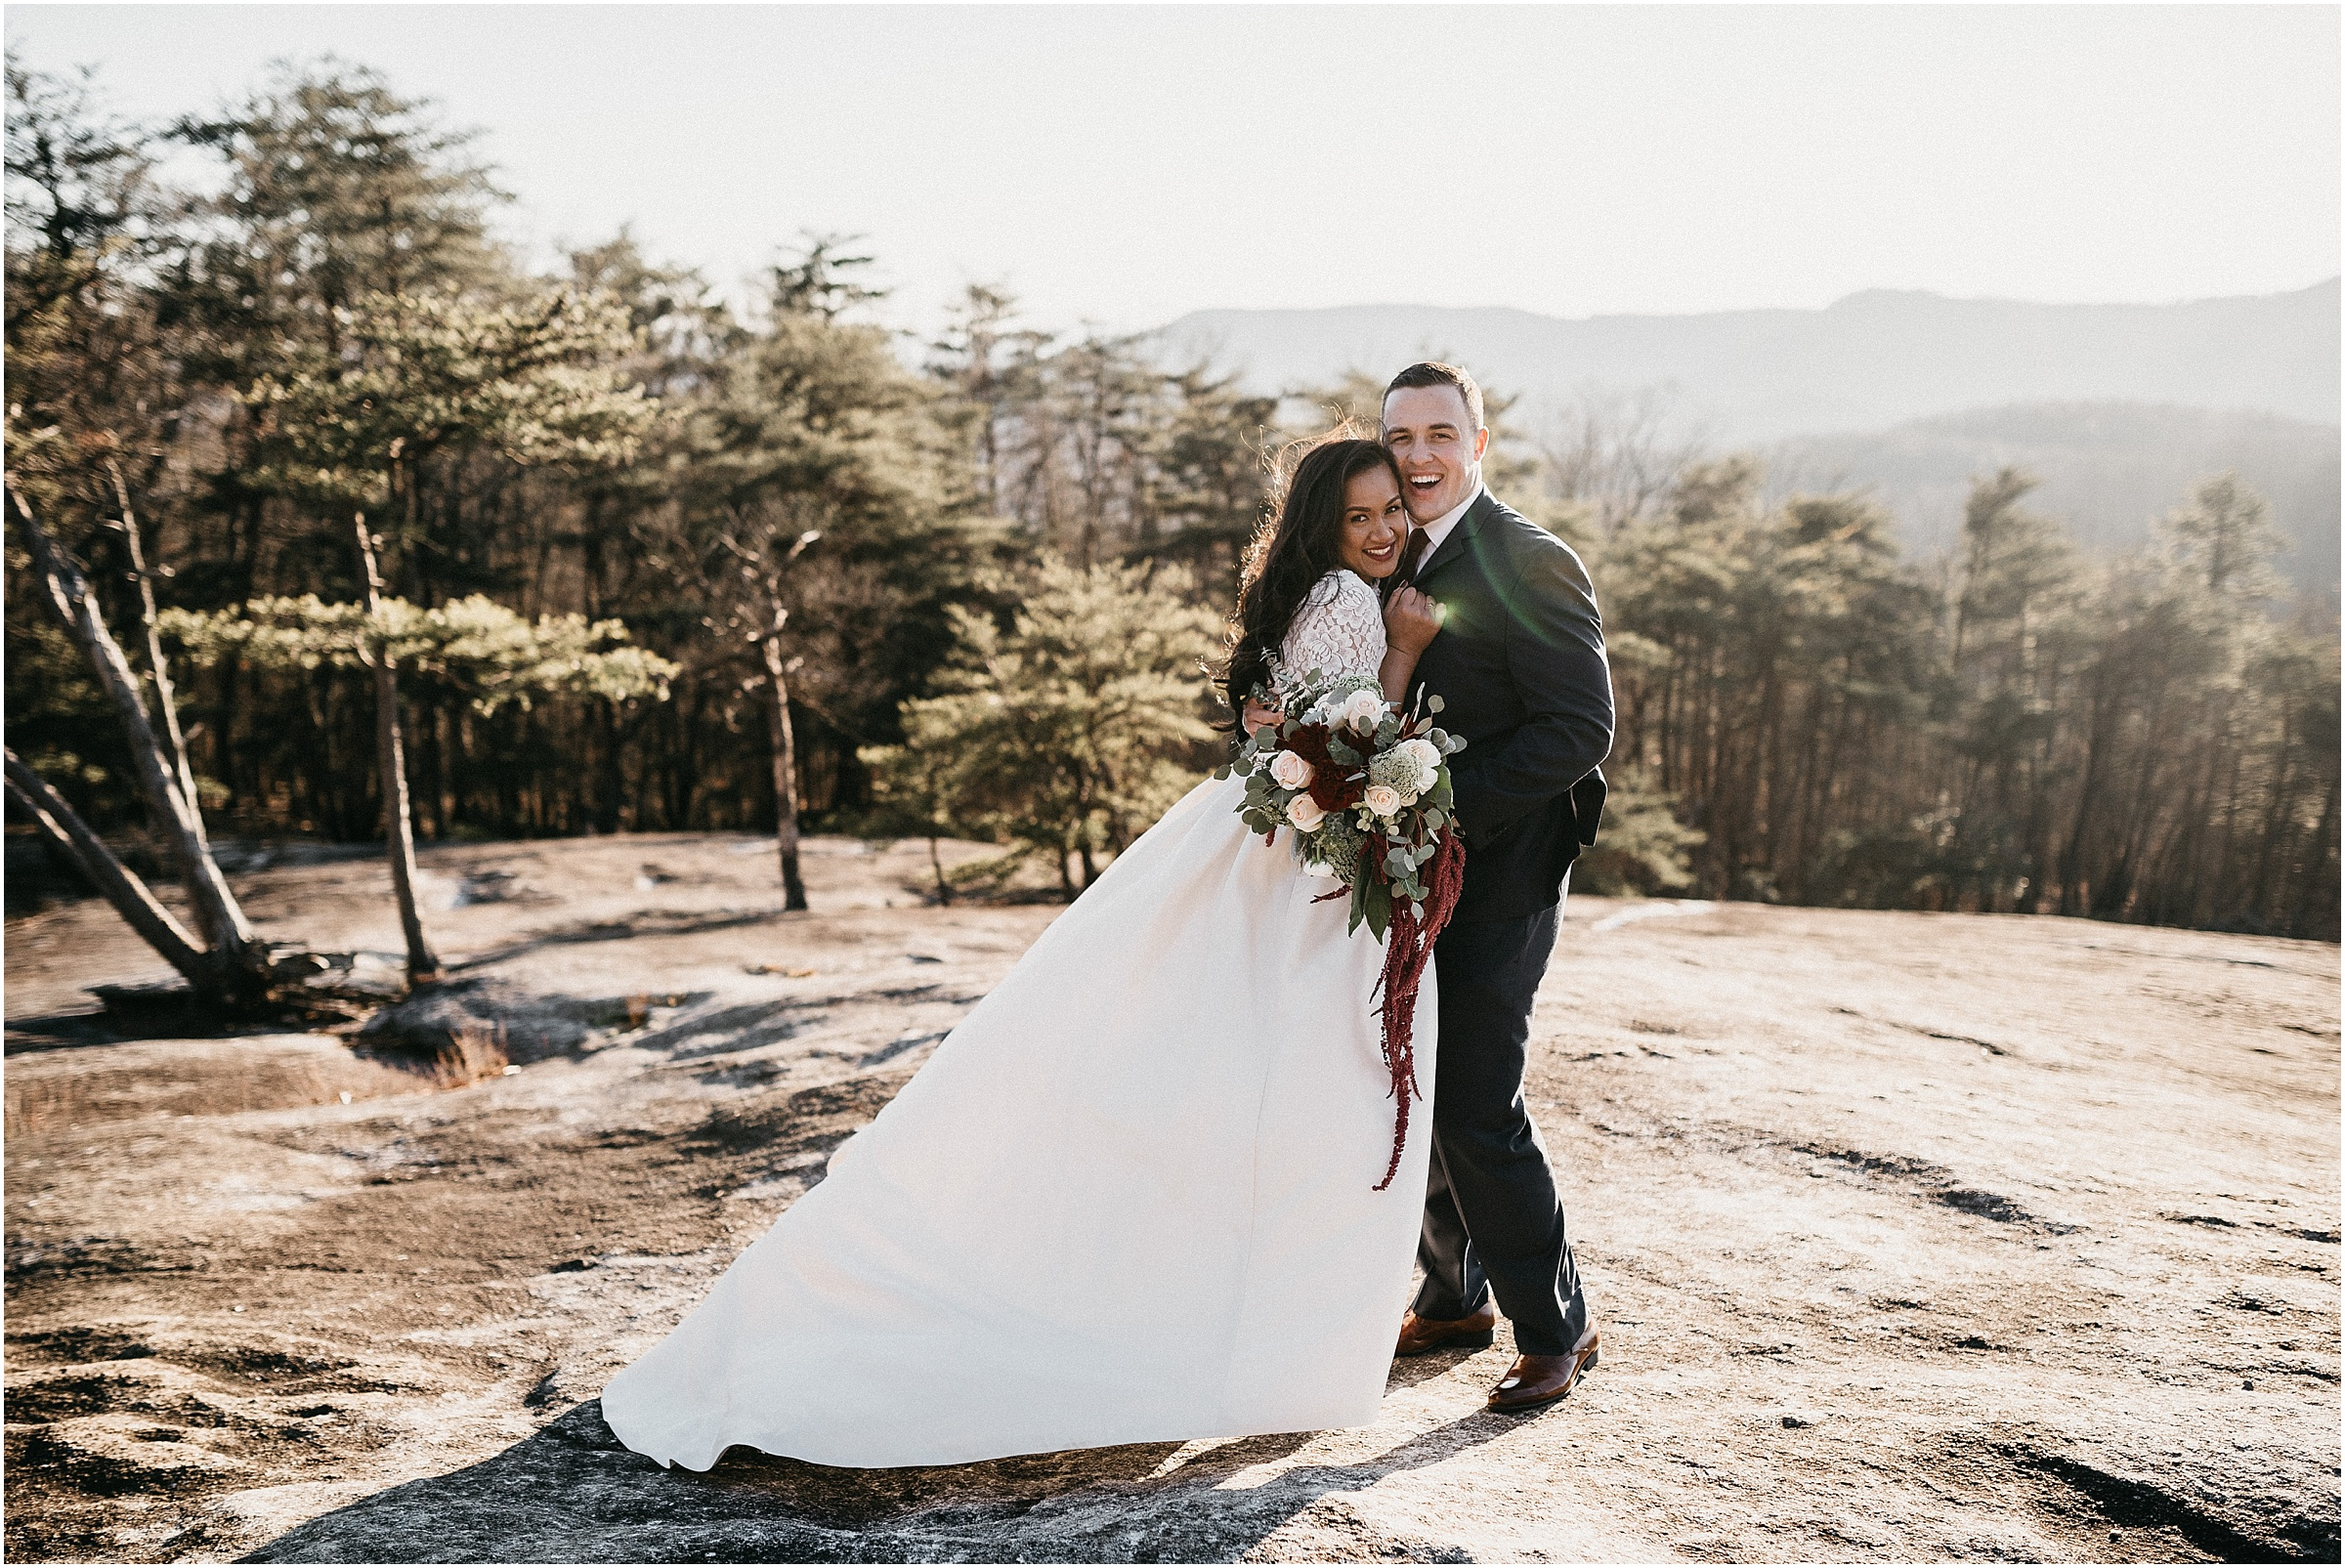 Stone_Mountain_NC_Elopement_26.JPG